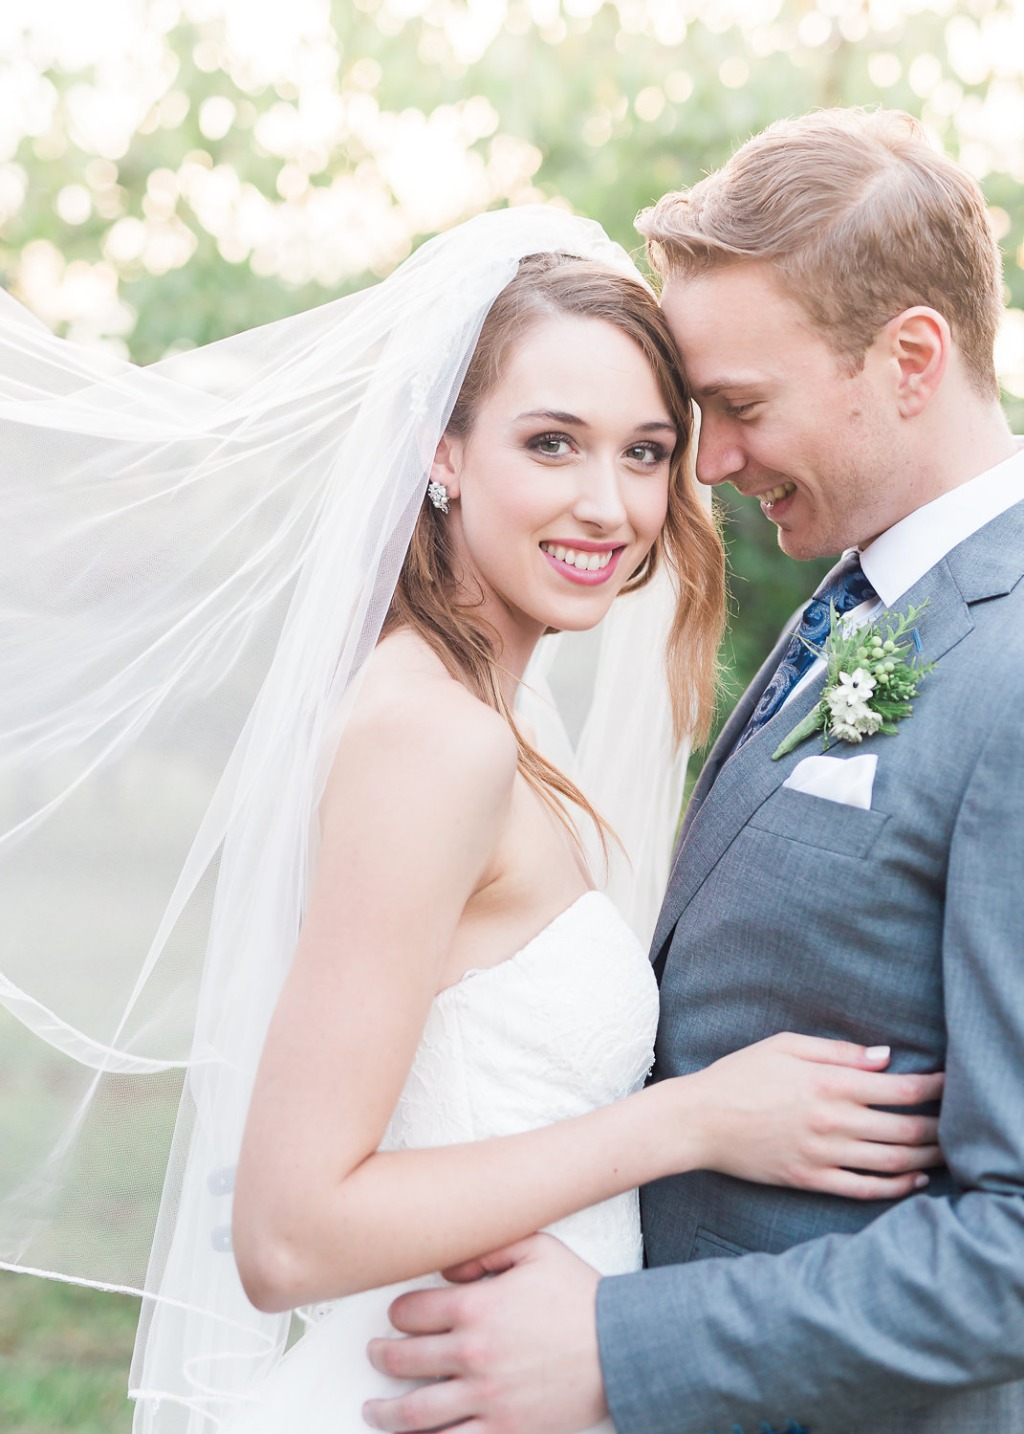 Explore Laura Jayne's website to get more wedding inspiration for your wedding day!